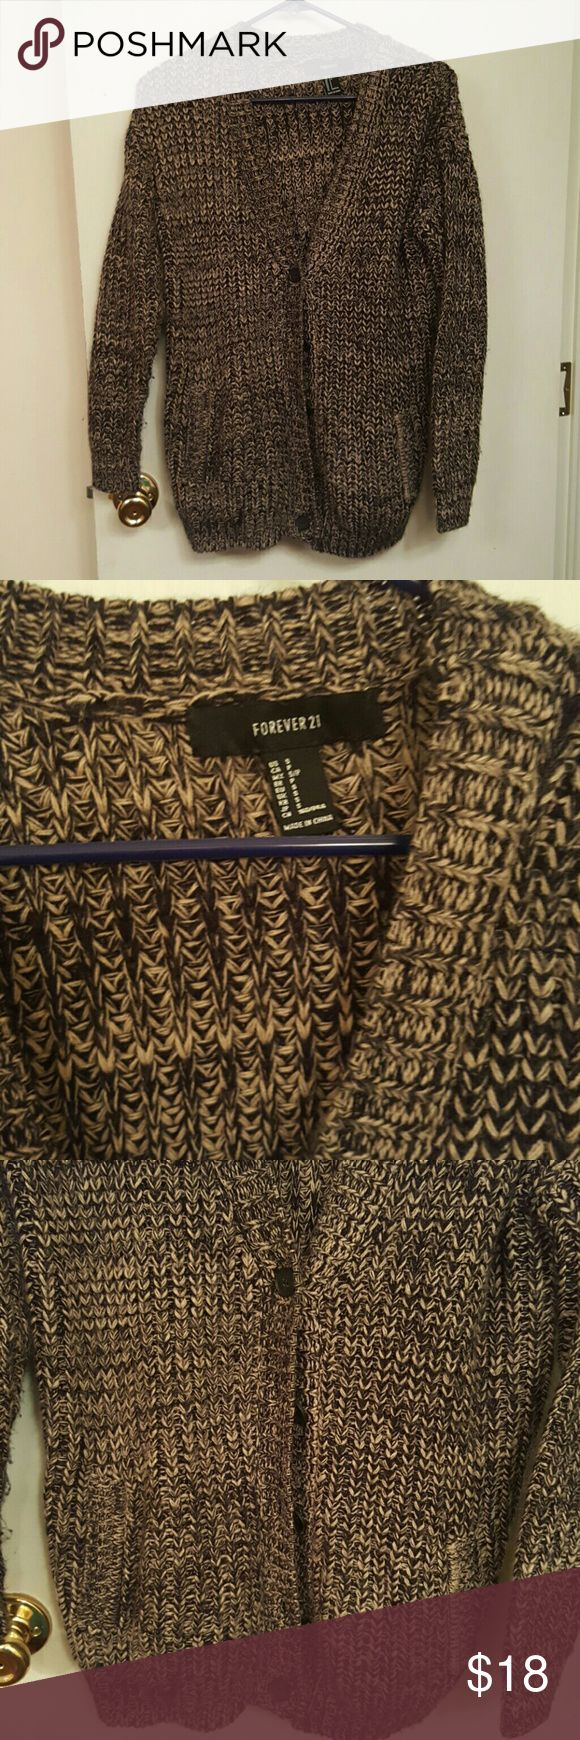 🆕💕 Forever 21 knit cardigan 💕 Soft forever 21 knit style cardigan. Has been worn, still in great condition. No rips or tears Forever 21 Sweaters Cardigans